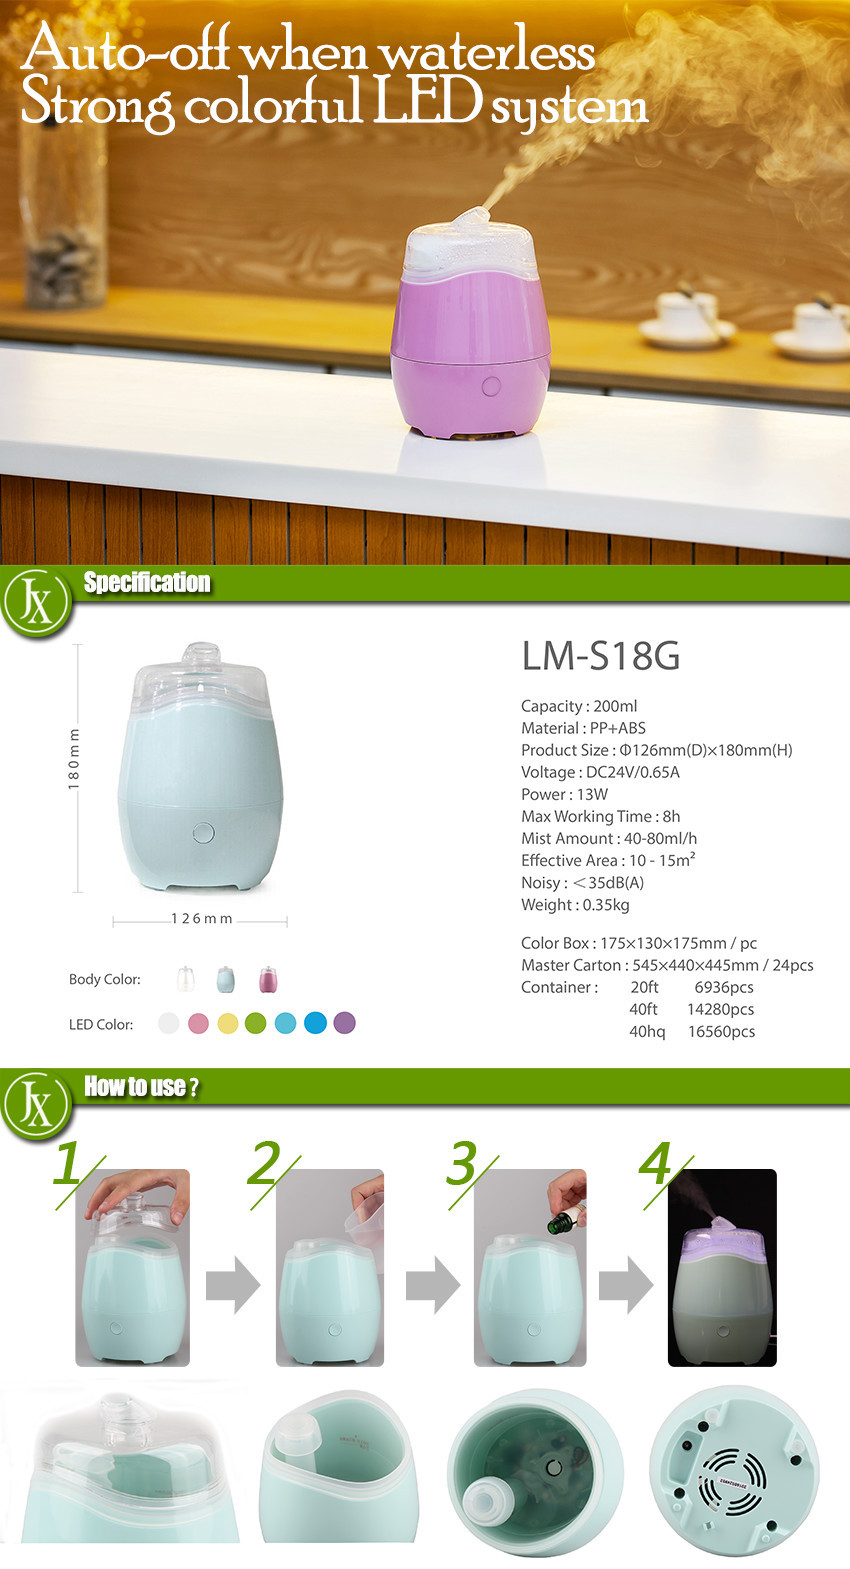 Ultrasonic aroma cool mist led light diffuser